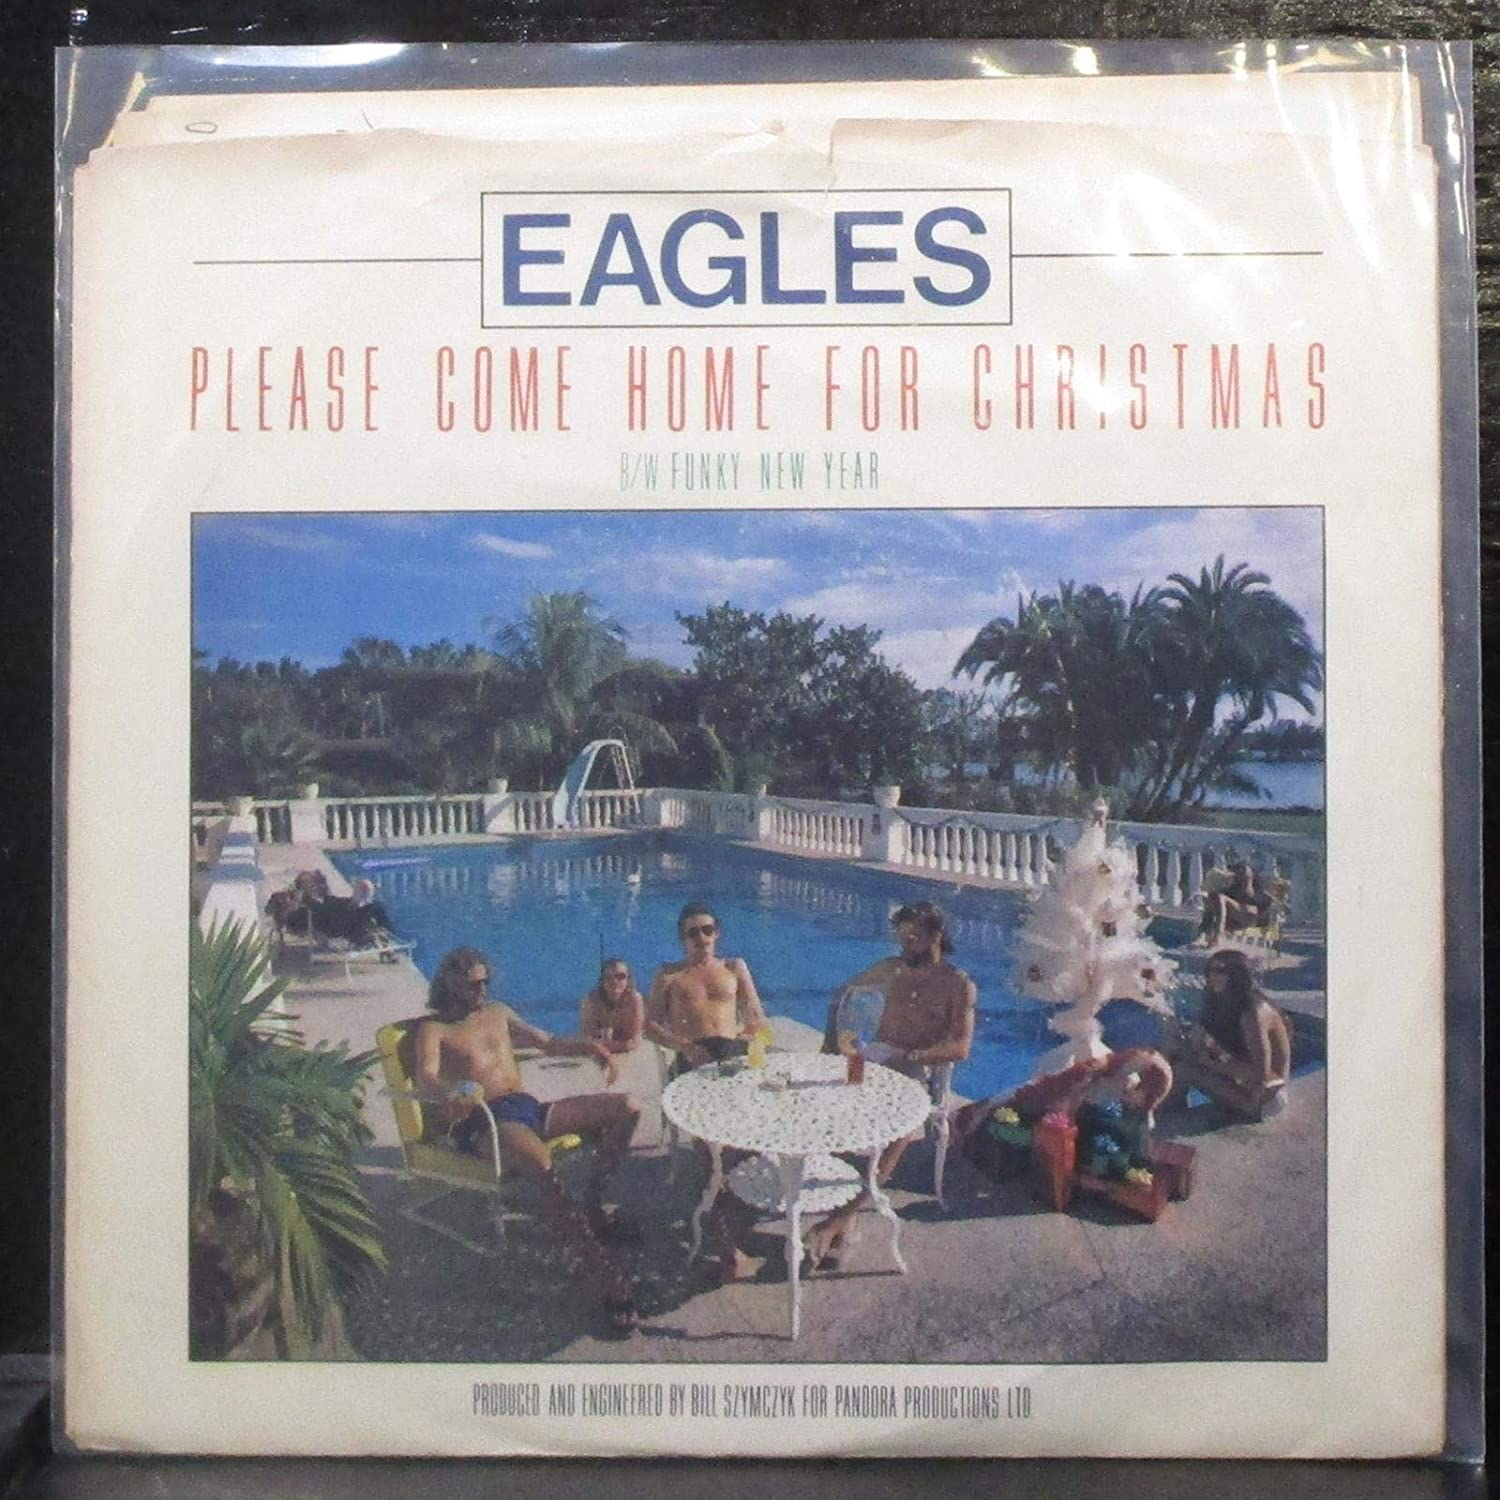 "Eagles - Please Come Home For Christmas / Funky New Year - 7"" Vinyl 45 Record"